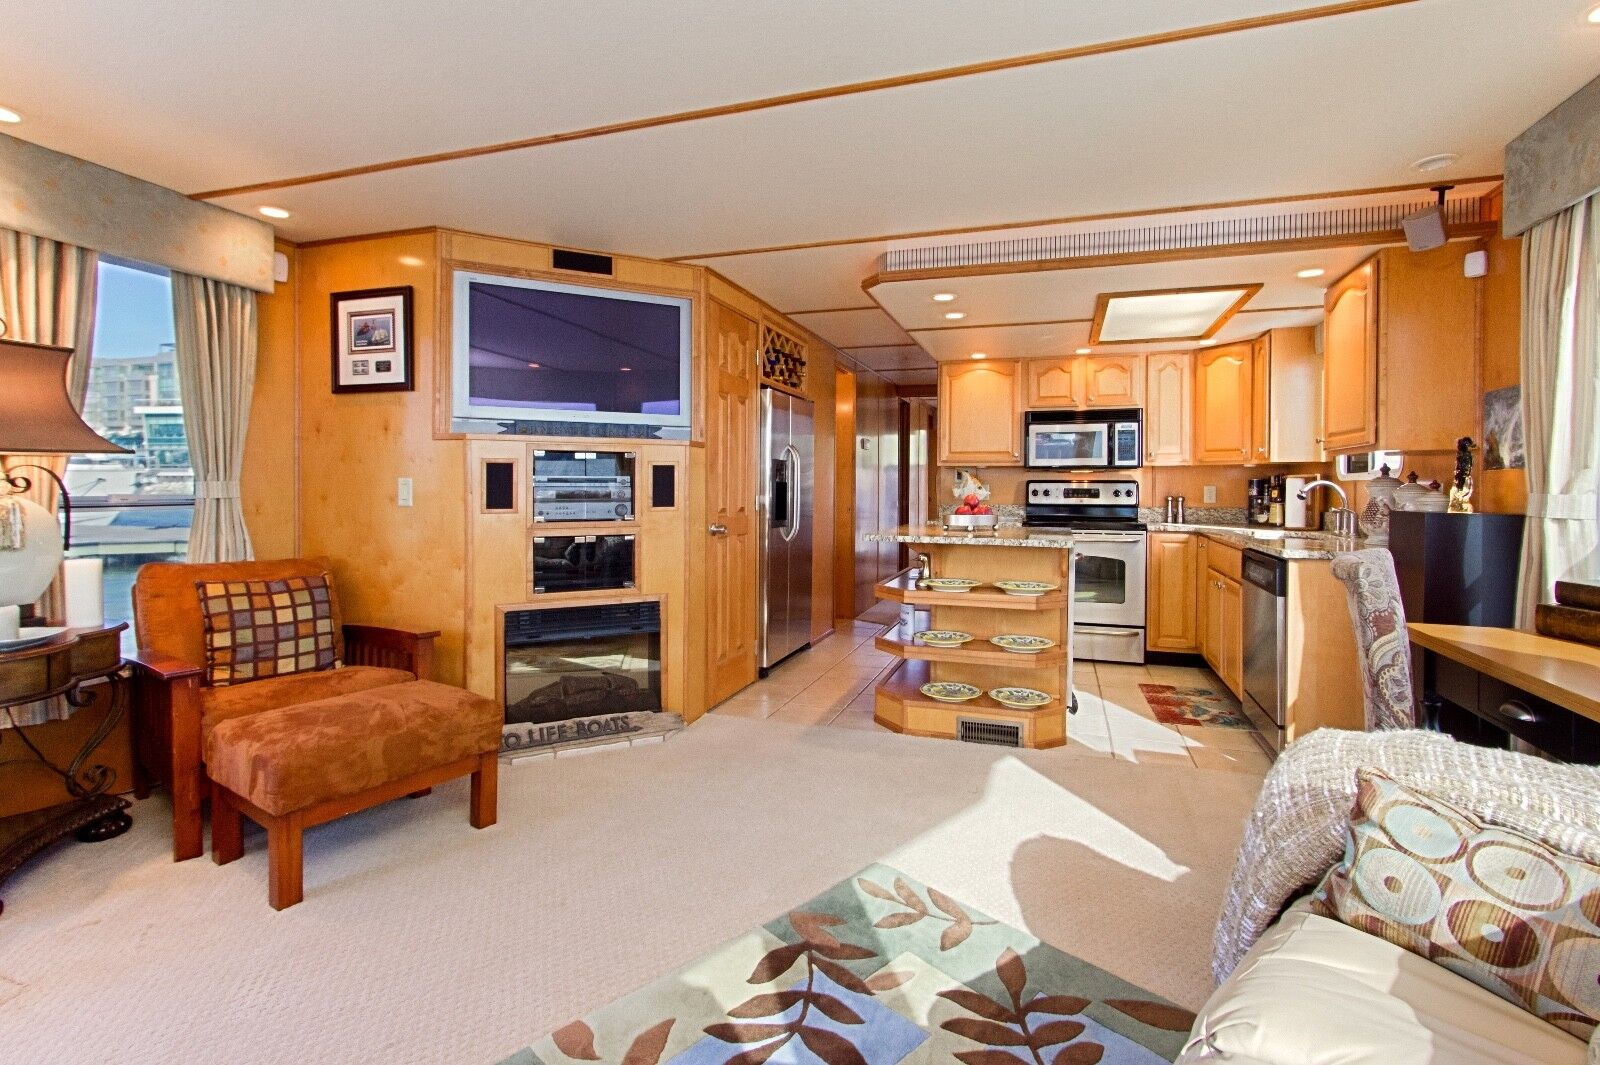 SALE! PRICE drastically REDUCED 65' River cruiser - liveaboard, perfect for ICW